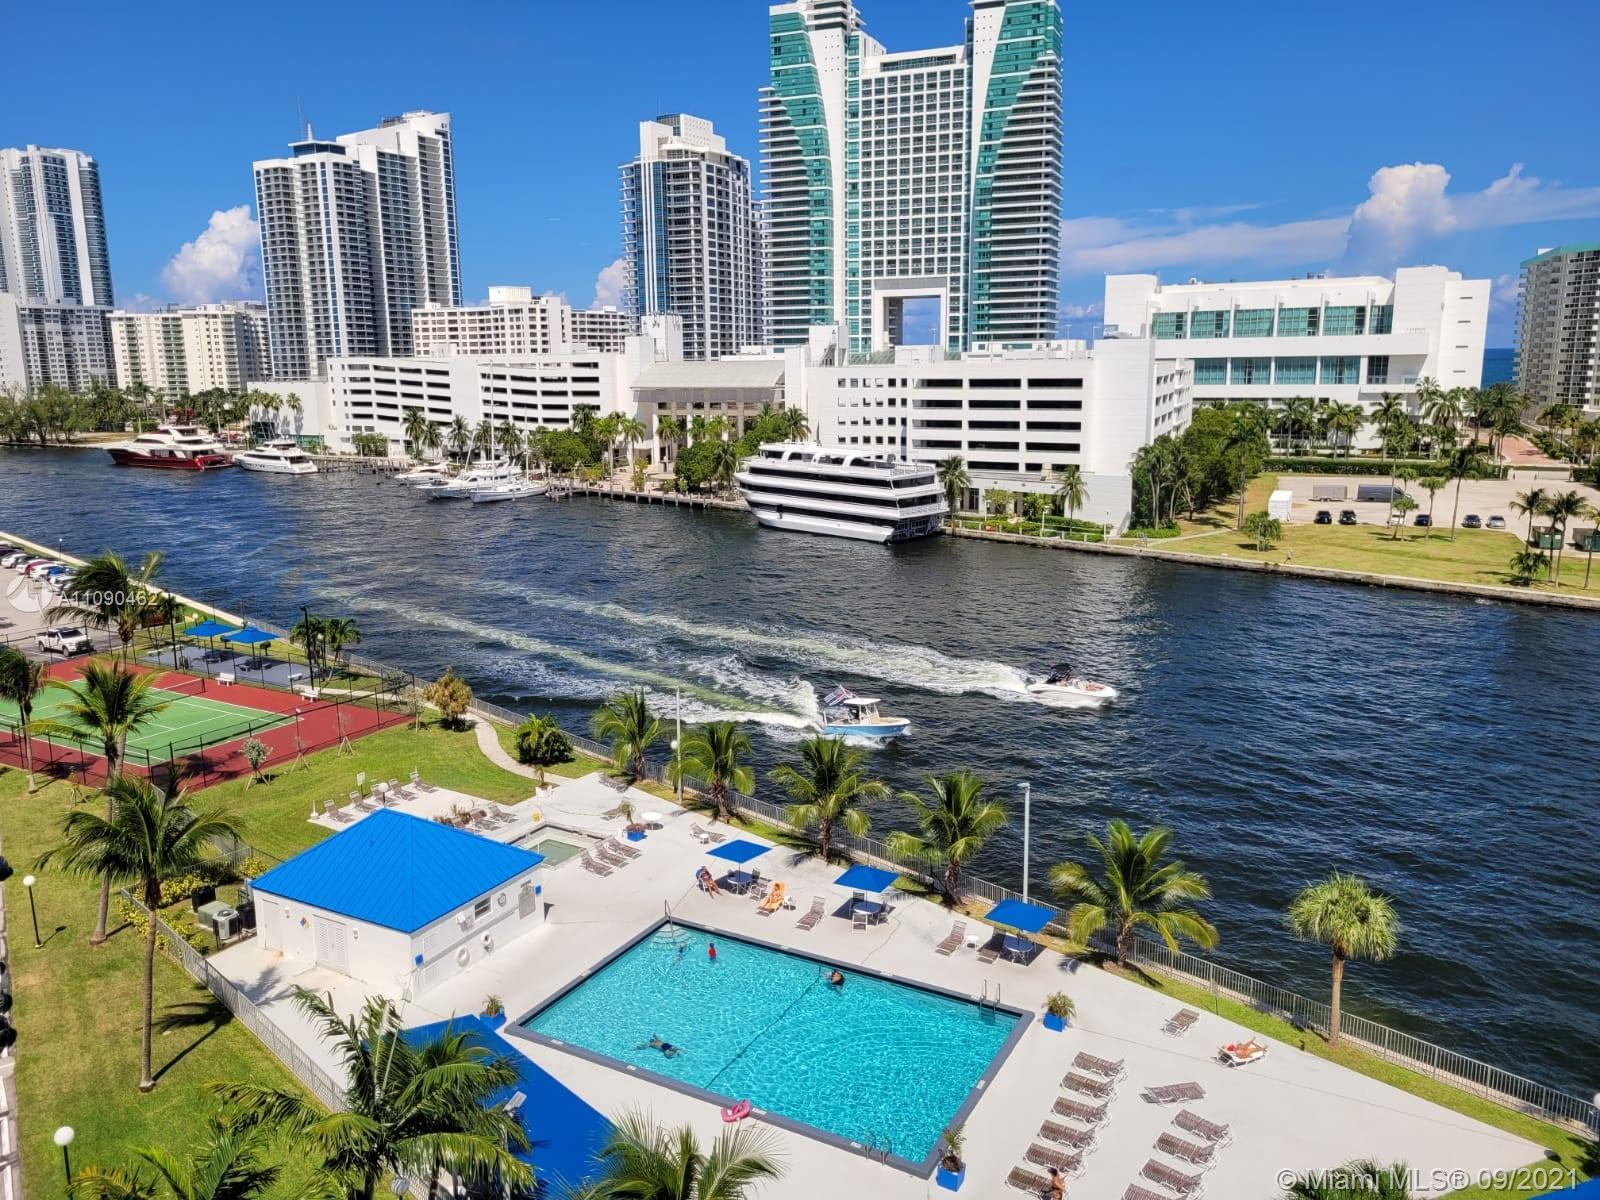 LOCATION LOCATION LOCATION IN HALLANDALE BEACH, IMPECCABLE APARTMENT WITH MILLIONAIRE INTRACOASTAL W